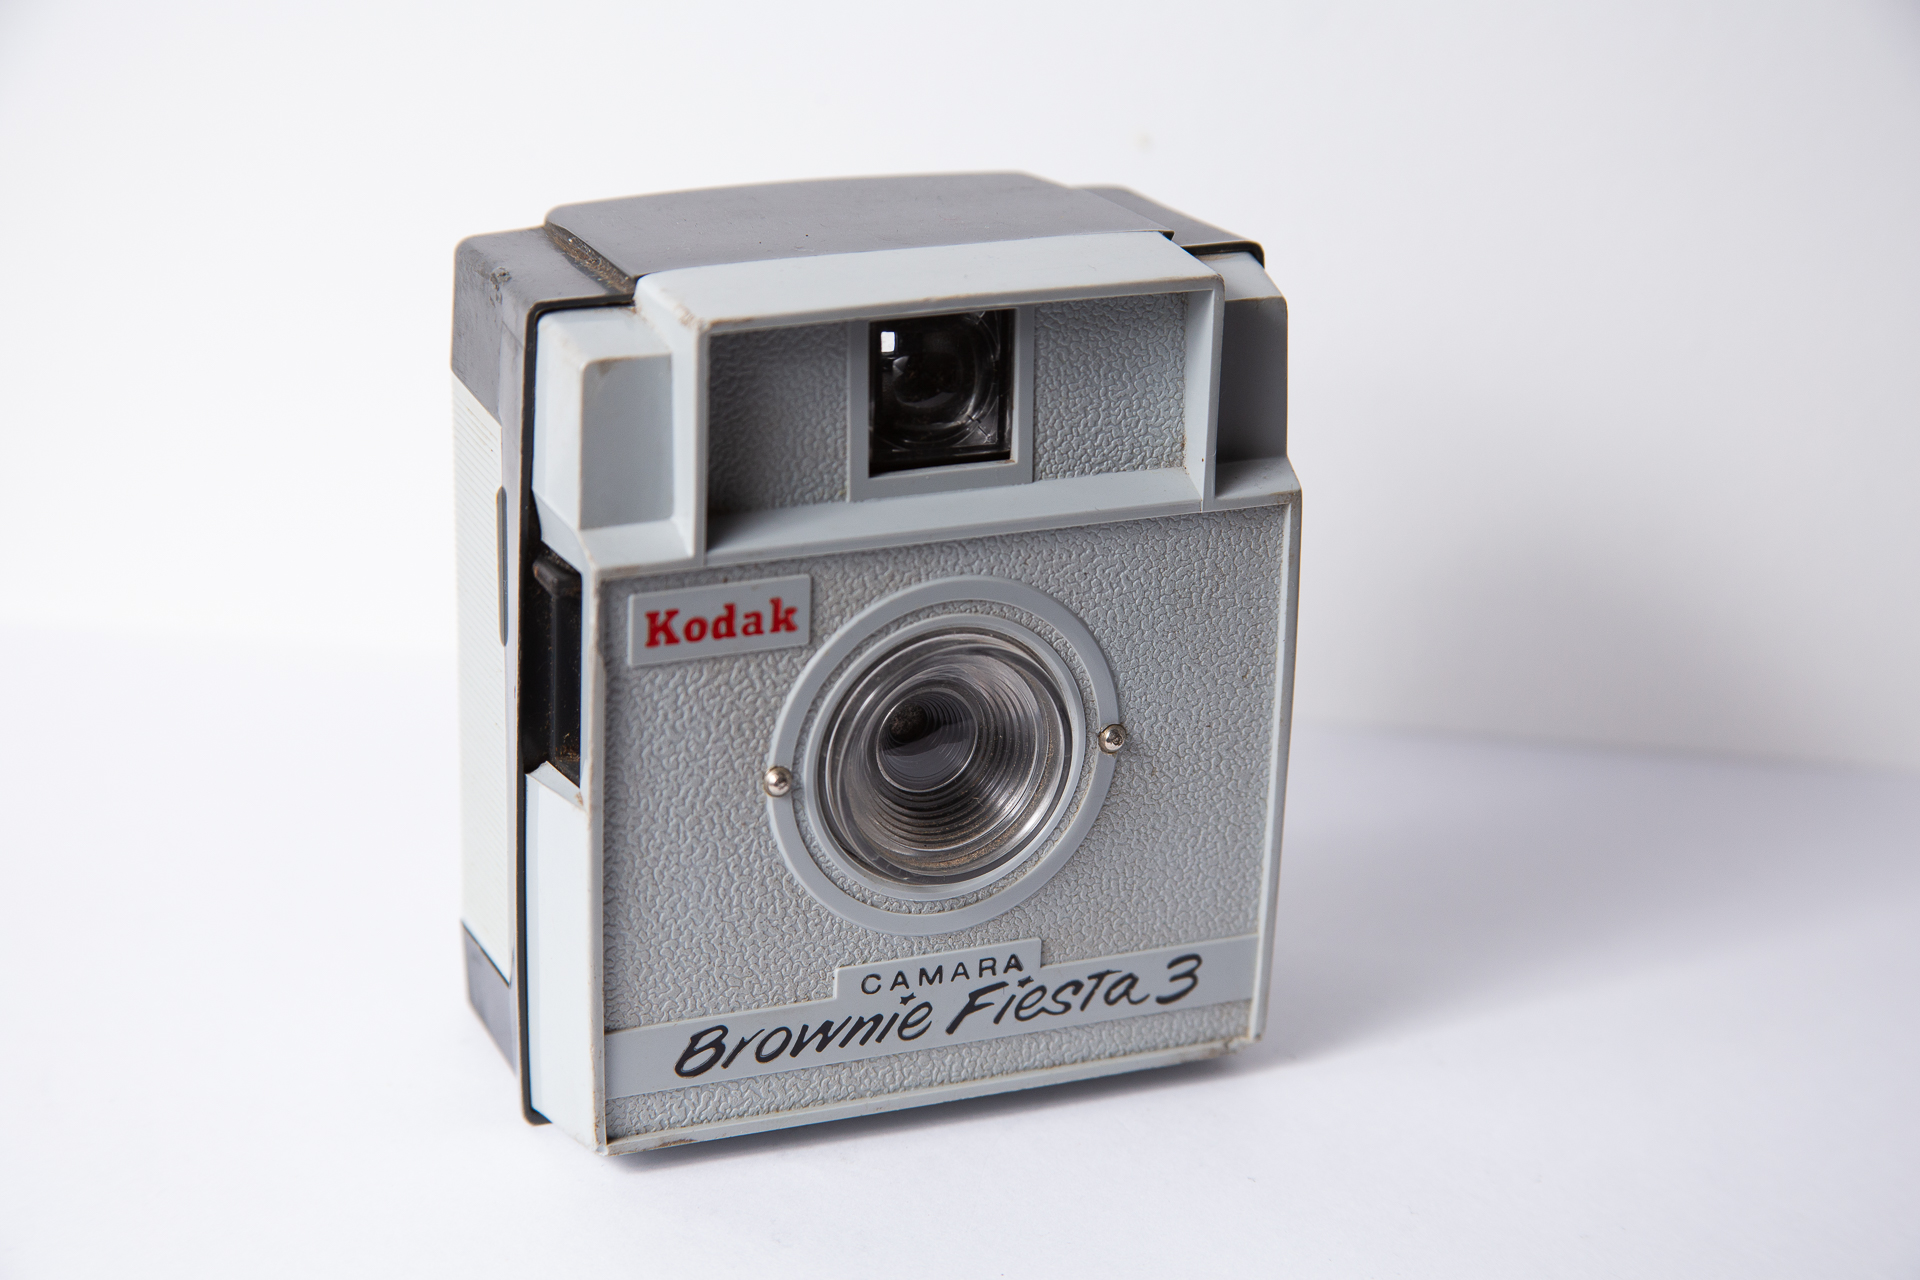 Kodak Brownie Fiesta 3